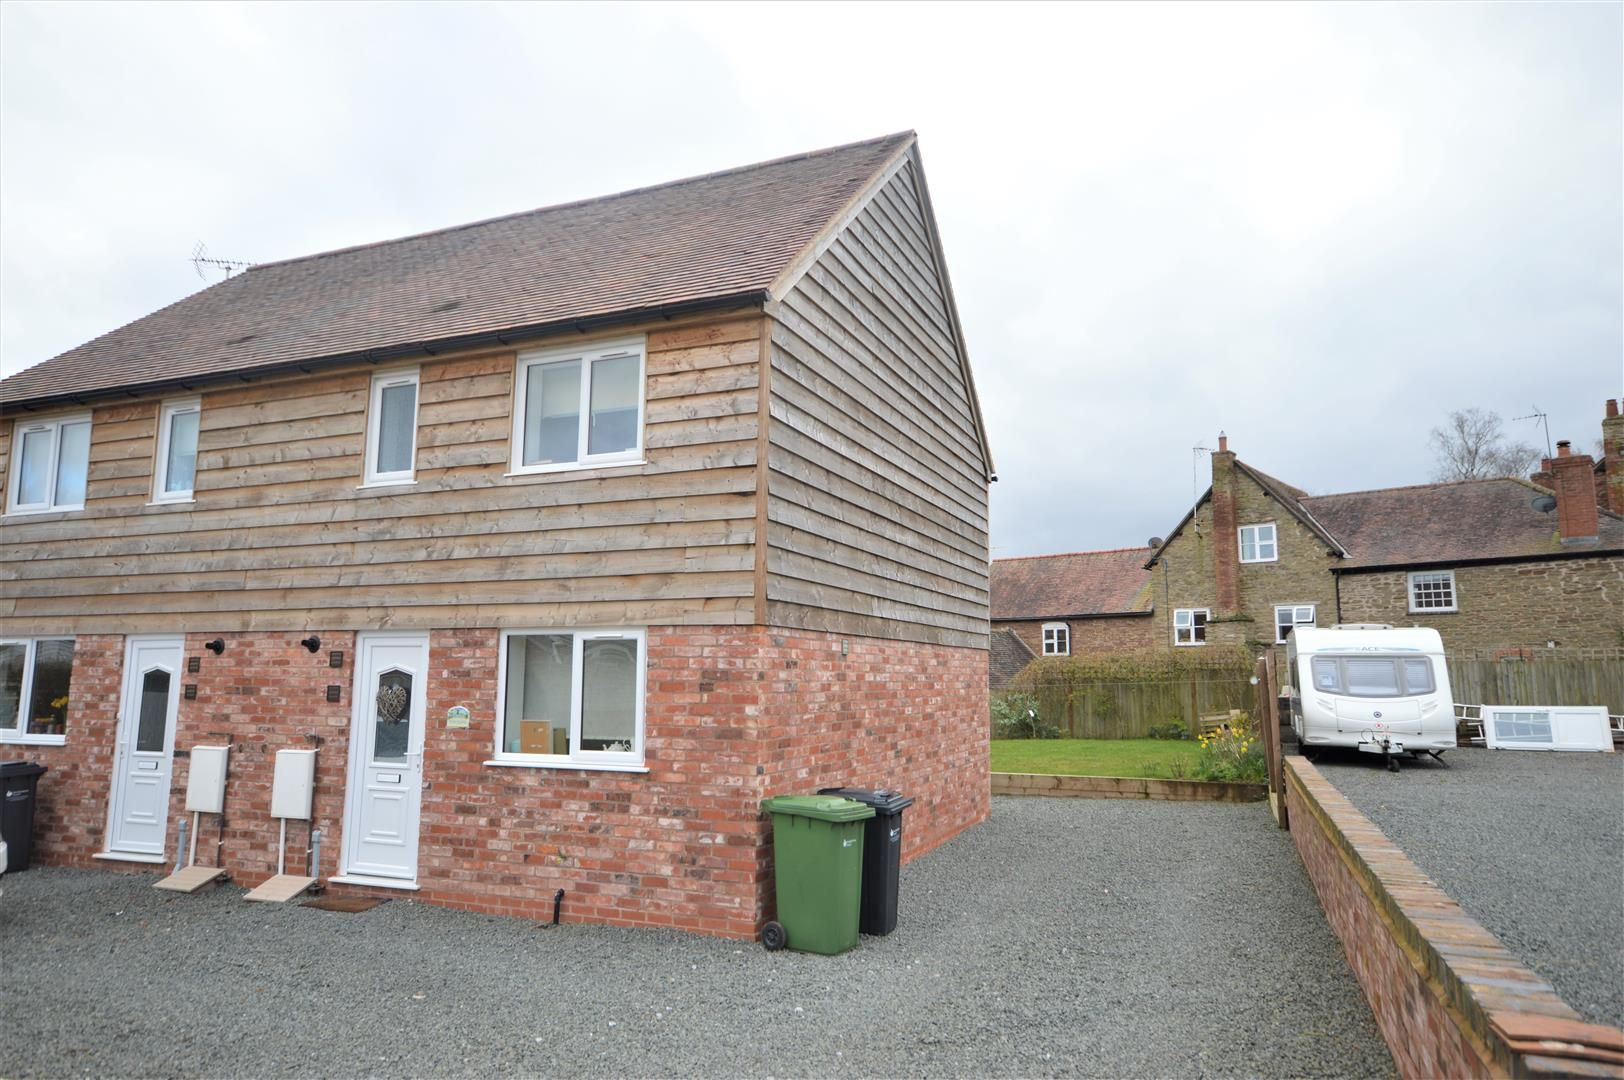 3 bed semi-detached for sale in Bromyard, HR7